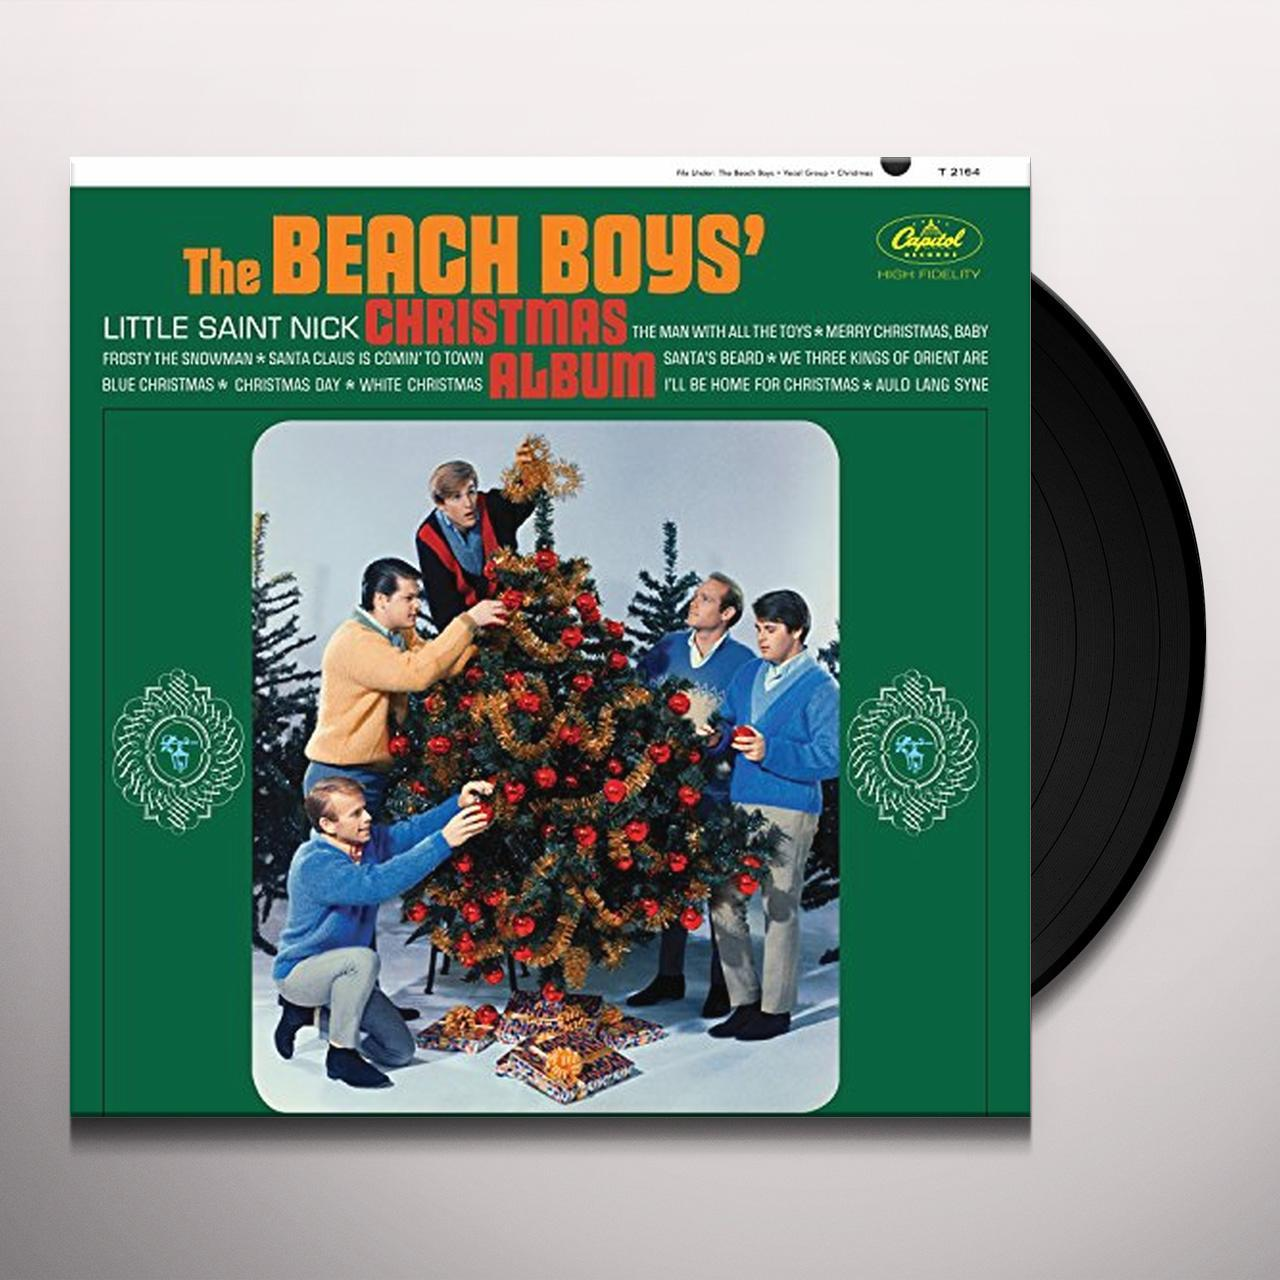 beach boys christmas album vinyl record tap to expand - Beach Boys Christmas Song